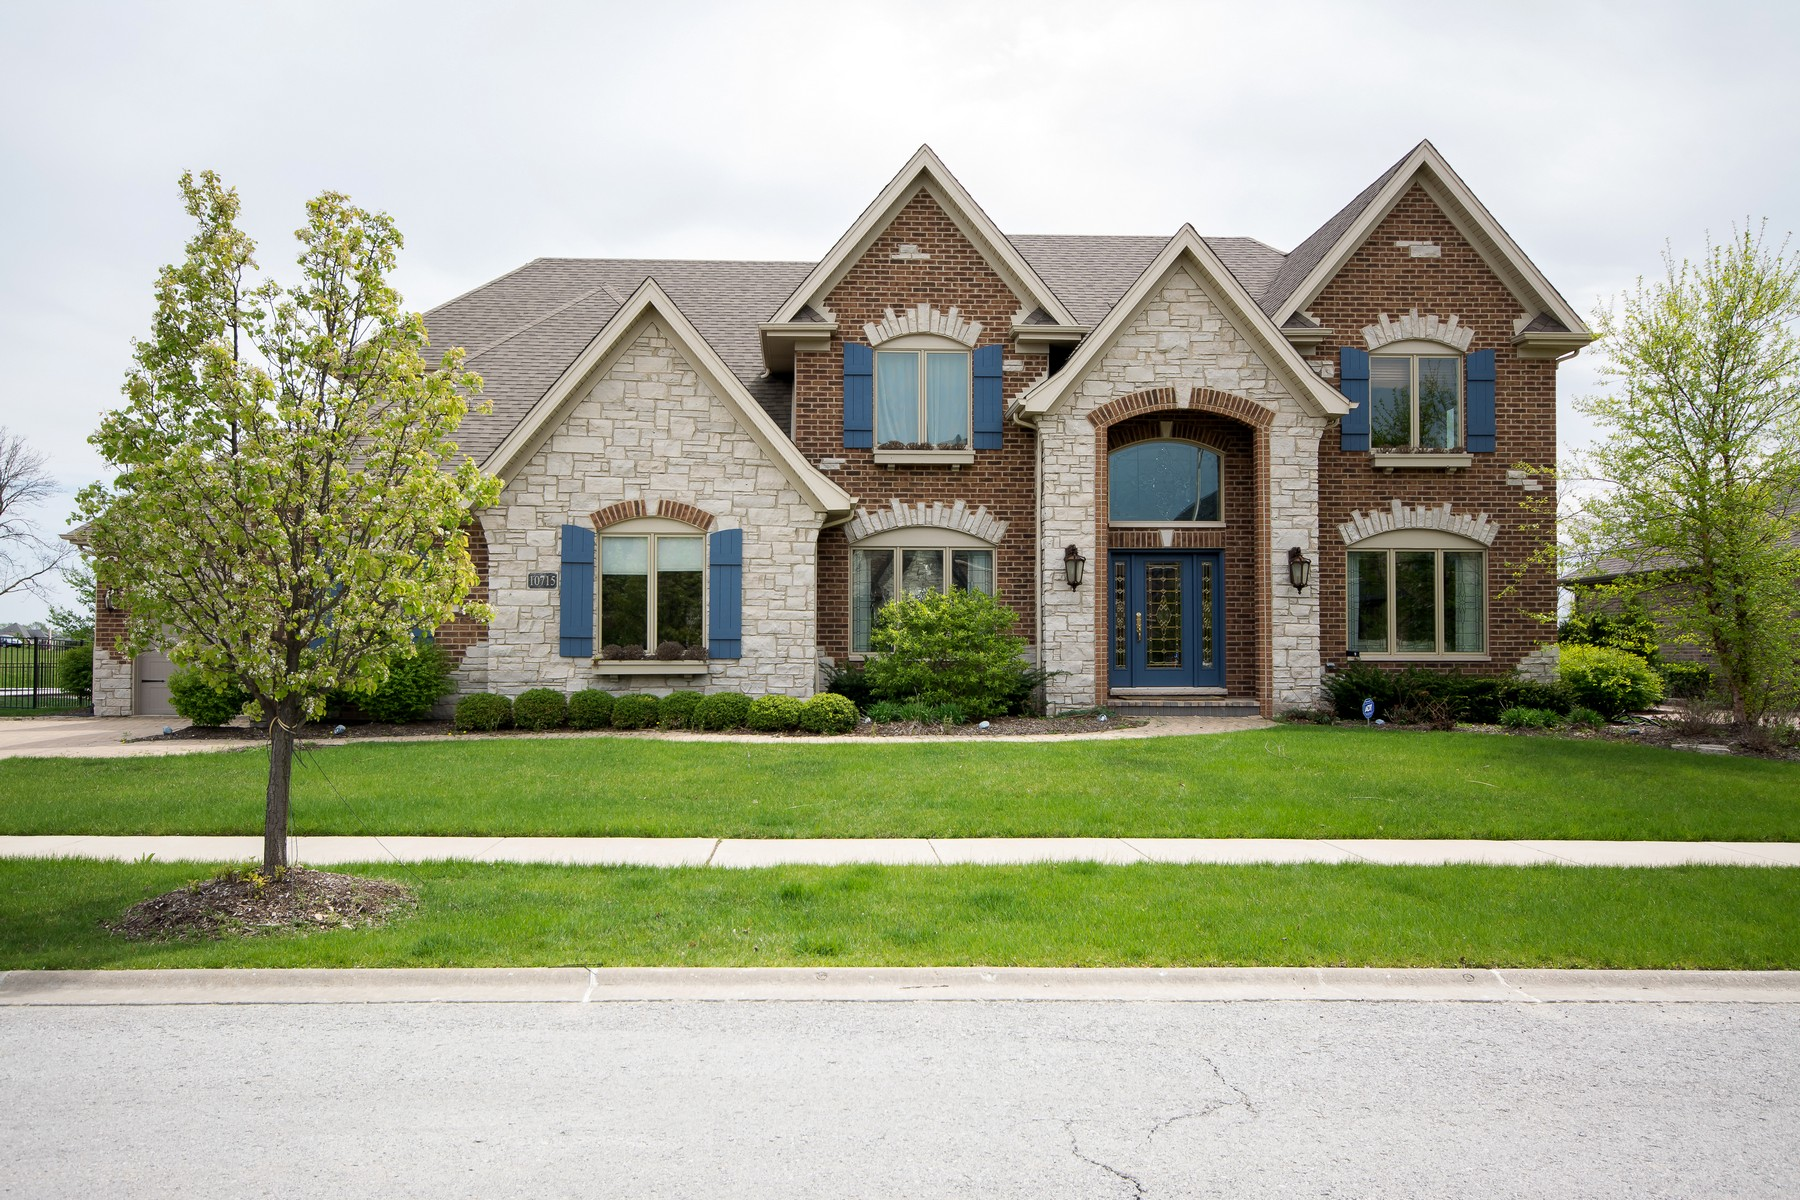 Single Family Home for Sale at Beautiful Custom Home 10715 Millers Way Orland Park, Illinois 60467 United States